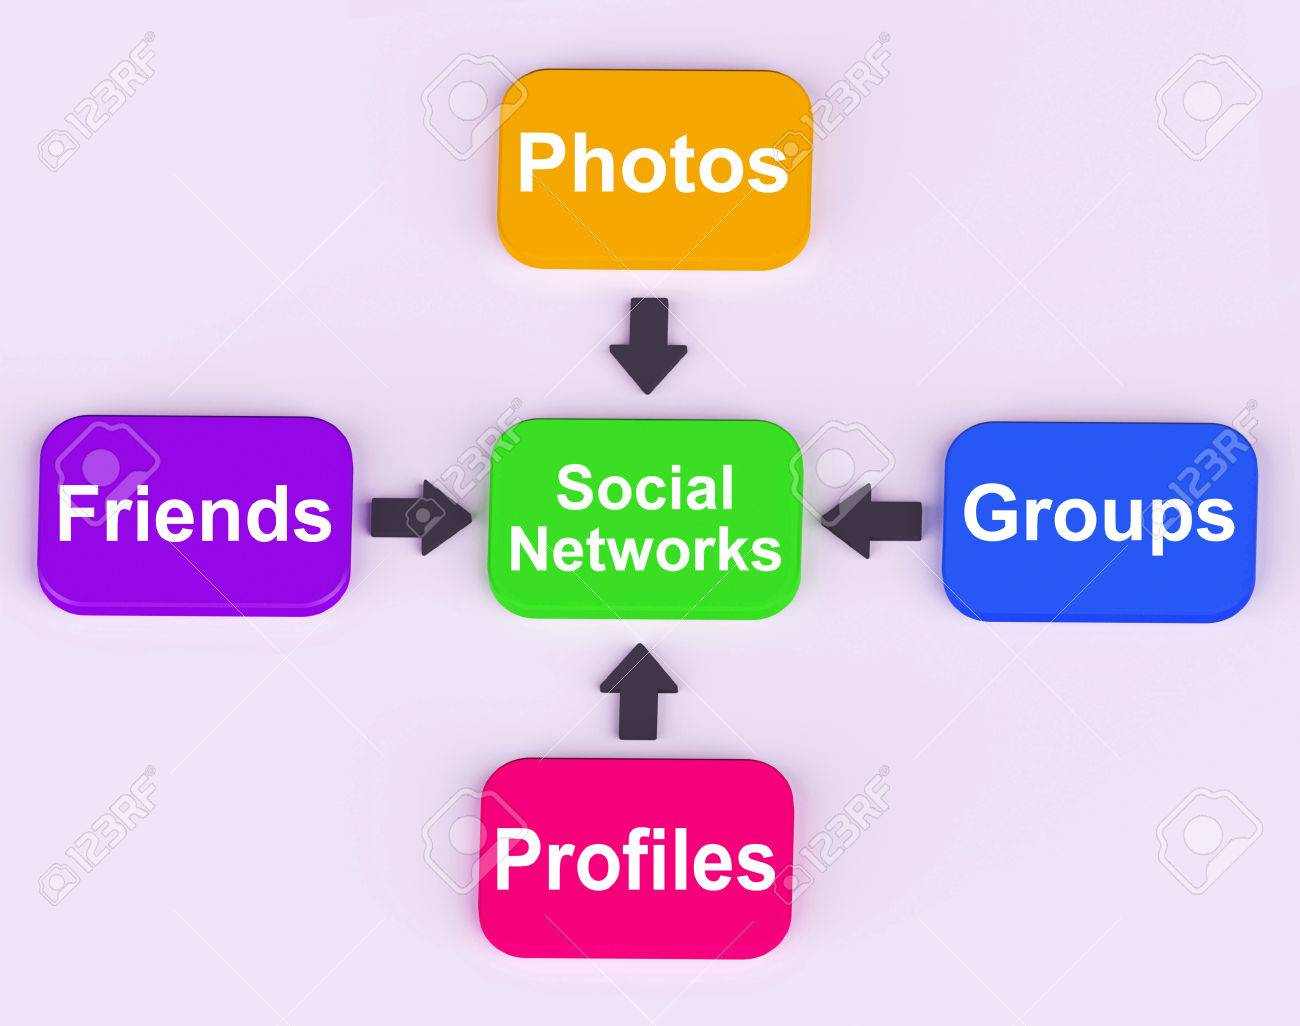 hight resolution of social networks diagram meaning internet networking friends and followers stock photo 26961684